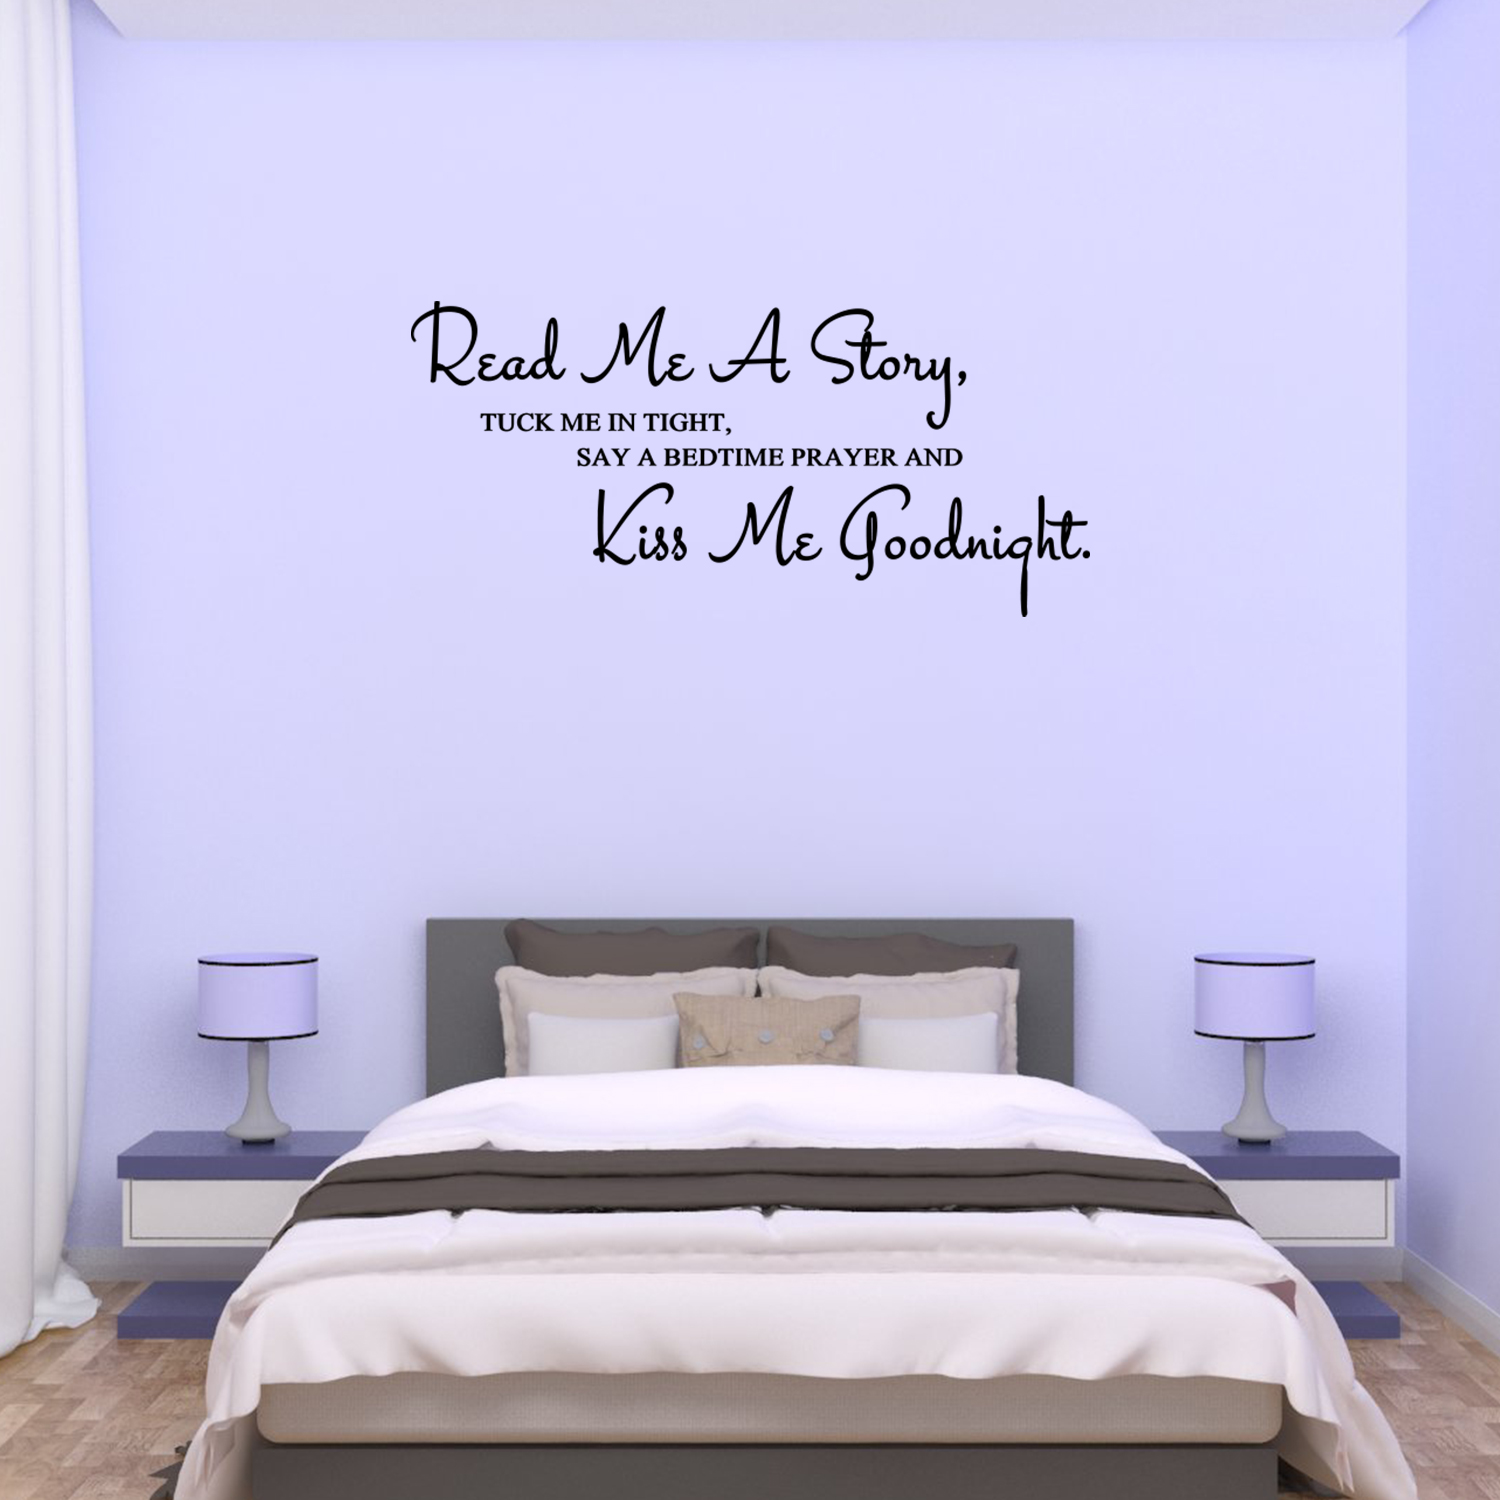 Wall Decal Quote Read Me A Story Tuck Me In Tight Say A Bedtime Prayer And Kiss Me Goodnight C199 Walmart Com Walmart Com